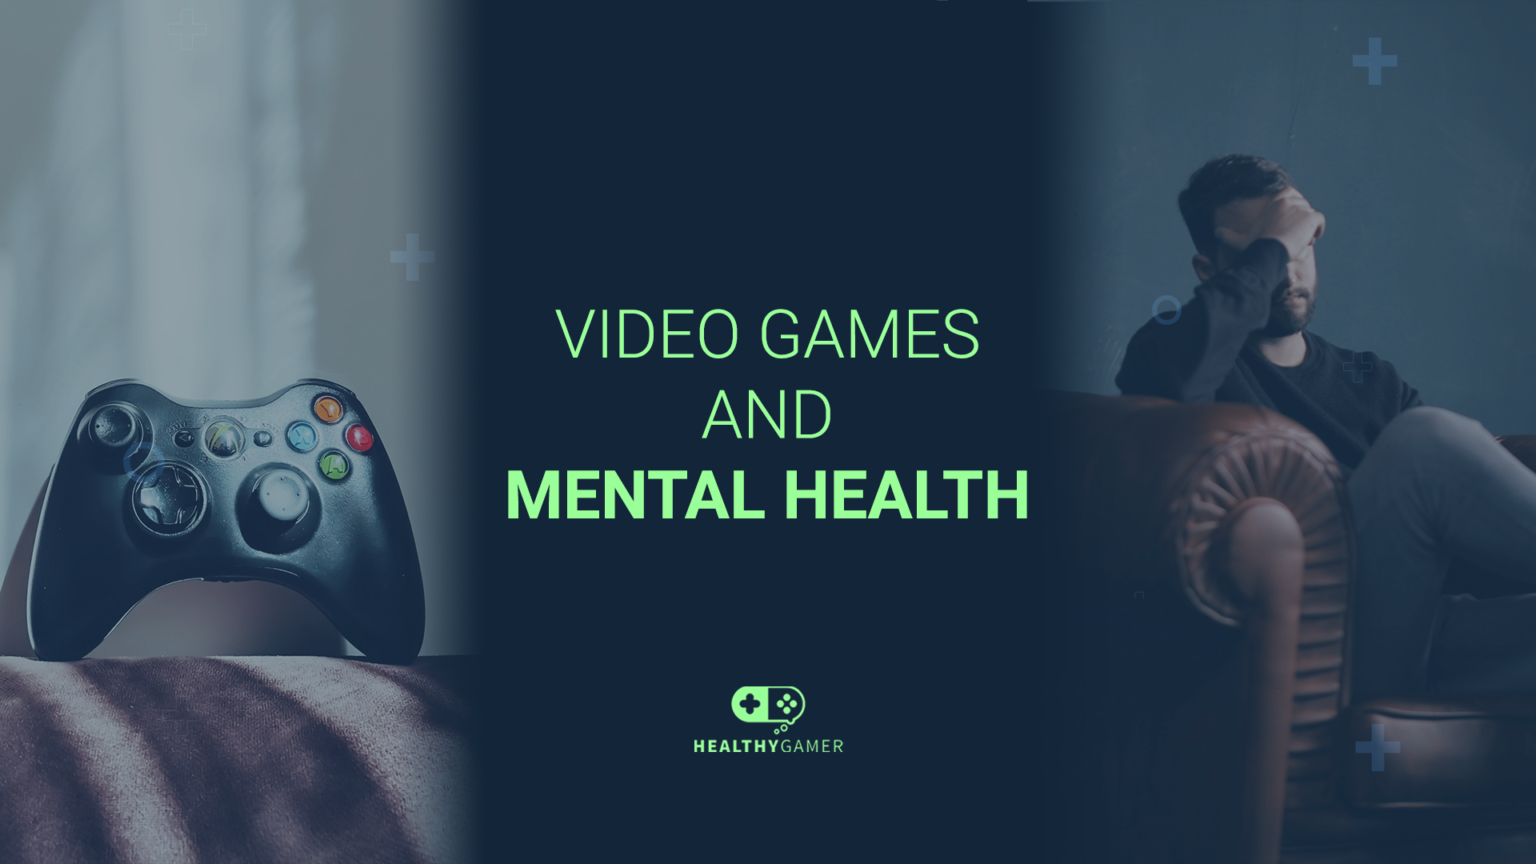 Video Games and Mental Health Explained